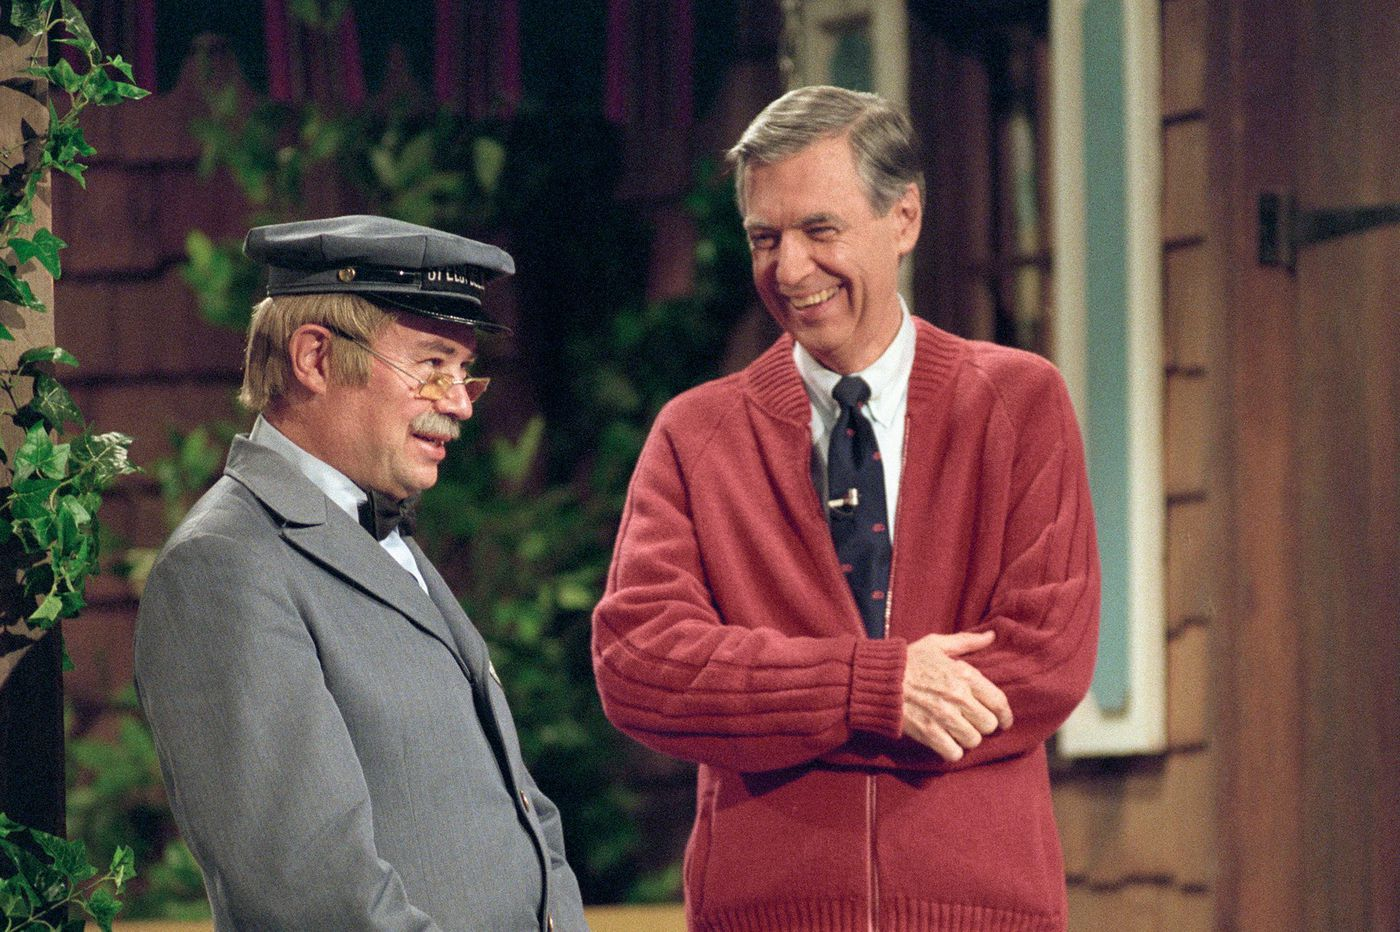 How going to Penn inspired the director of Mister Rogers doc 'Won't You Be My Neighbor?'